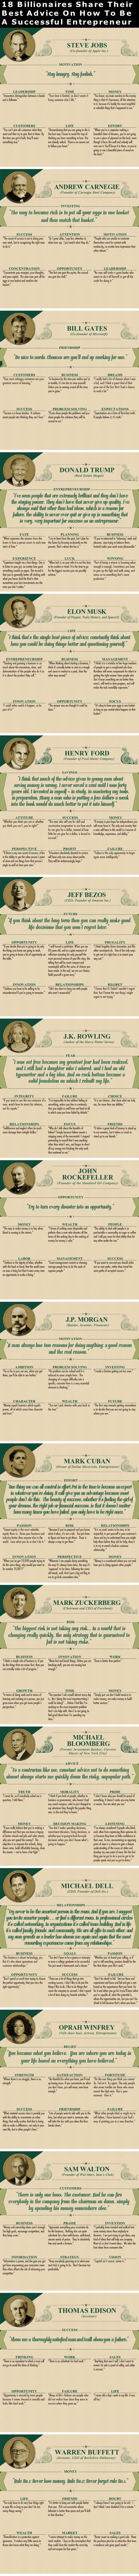 Positive Quotes 18 Billionaires Share Their Best Advice On How To Become A Successful Entrepreneur success business tips facts self improvement wealth billionaires infographics entrepreneur self help tips on self improvement entrepreneurship entrepreneur